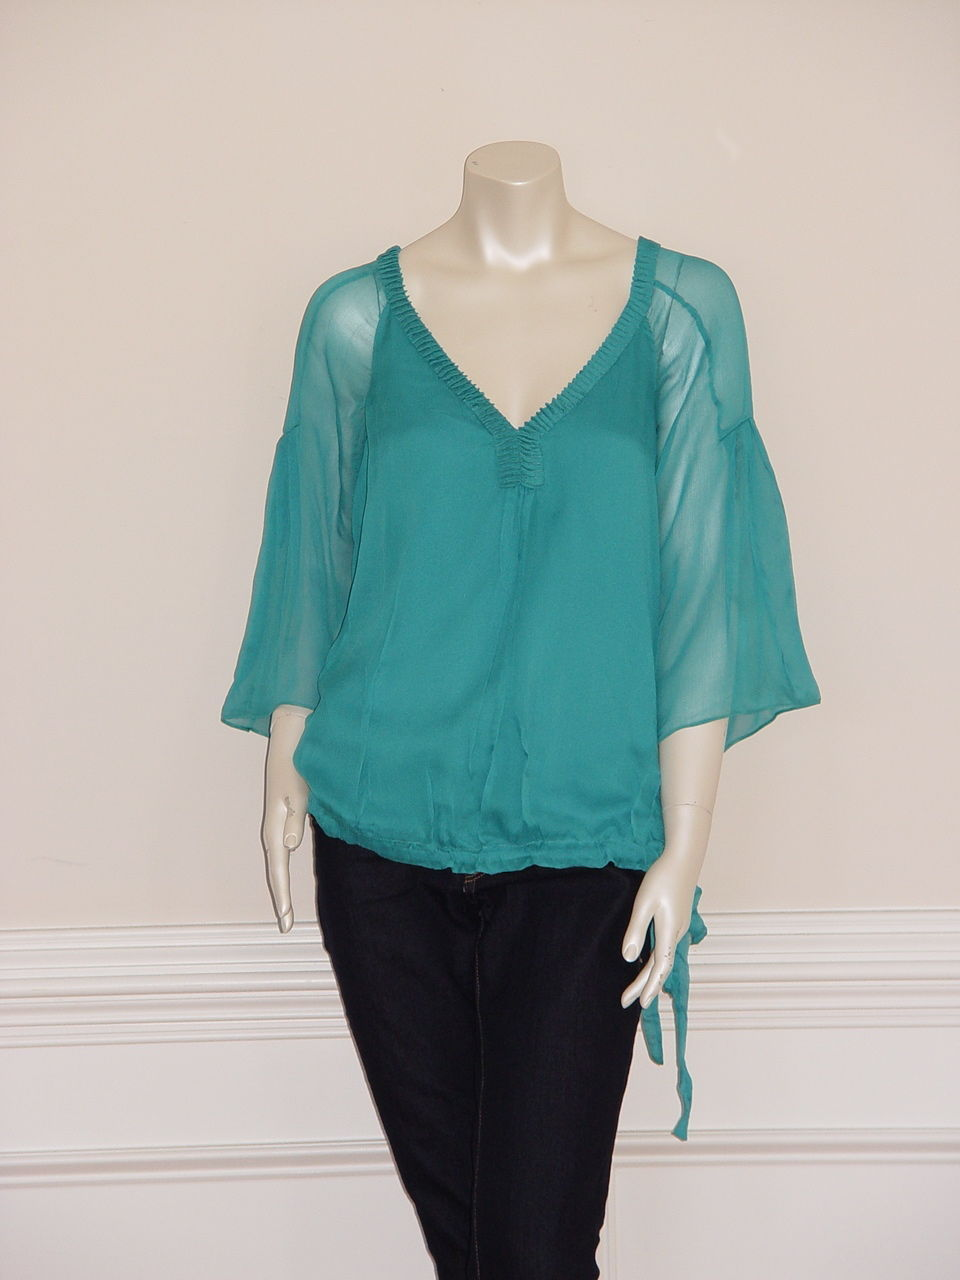 Primary image for DIANE von FURSTENBERG CHIARA JOCKEY GREEN TOP BLOUSE - US 12 - UK 16